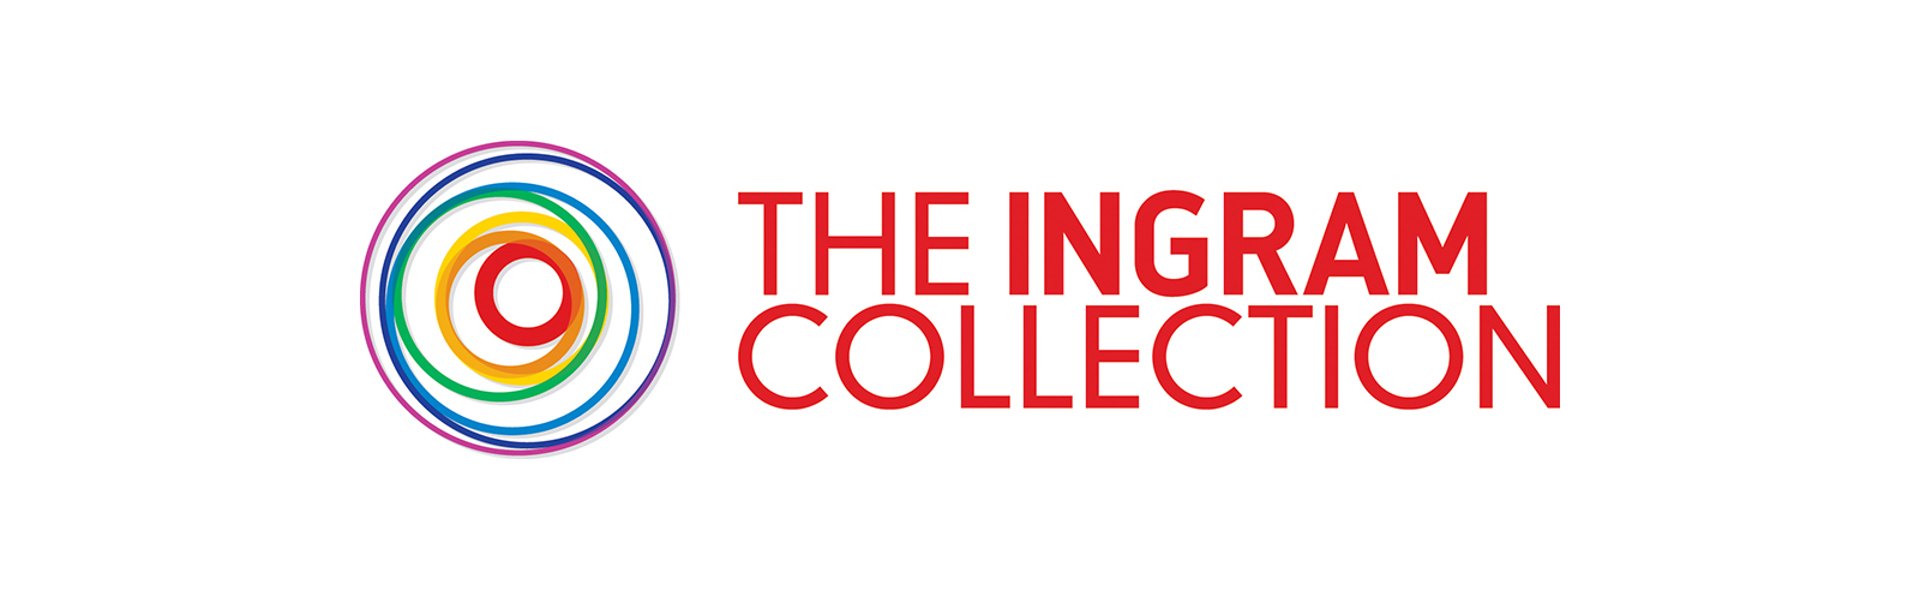 Bringing the Ingram Collection to care homes